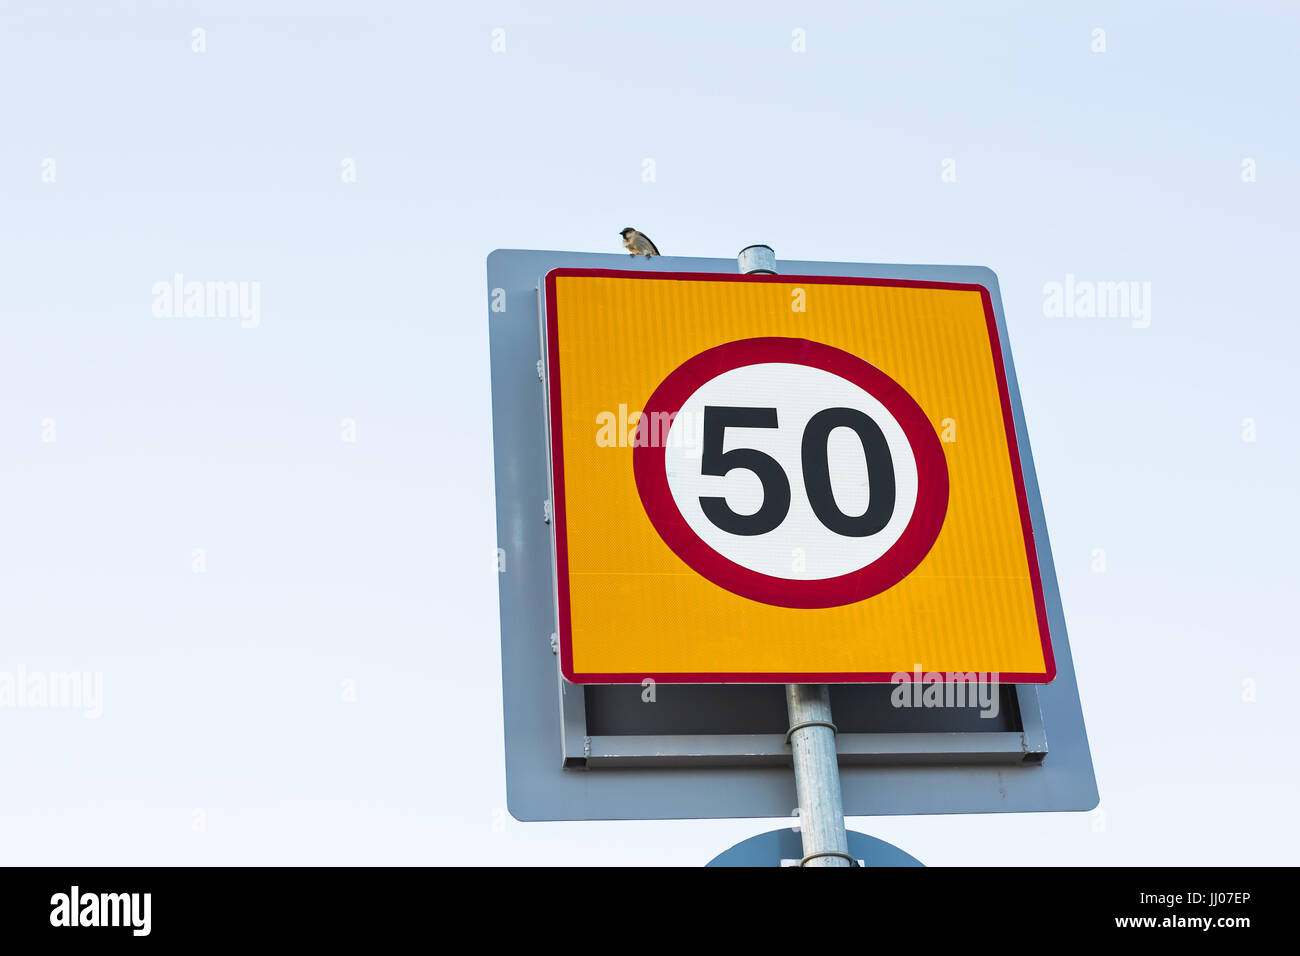 Road sign speed limit to 50, traffic sign. Stock Photo